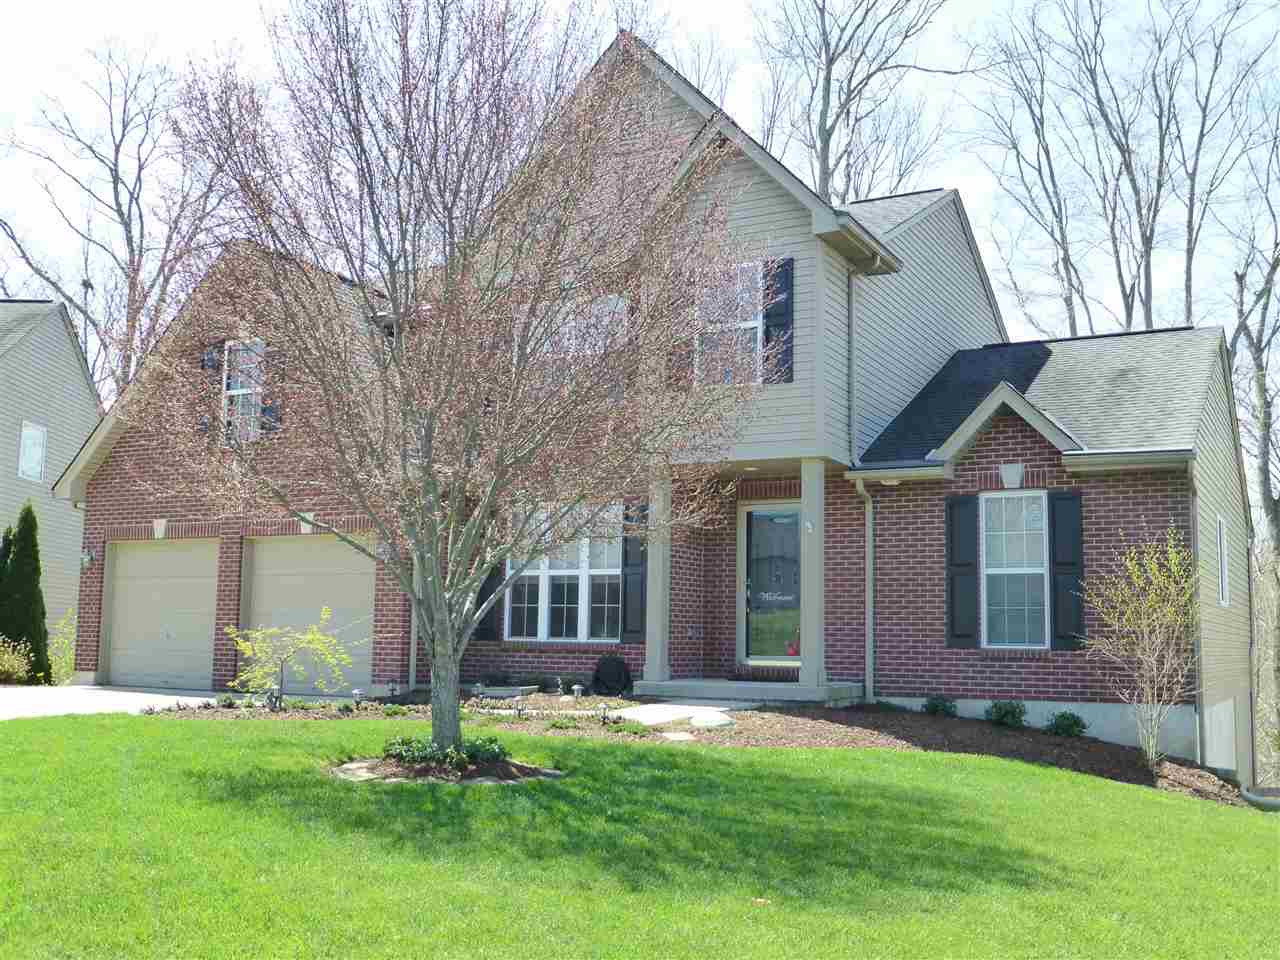 Photo 1 for 7129 Susan Ct Burlington, KY 41005